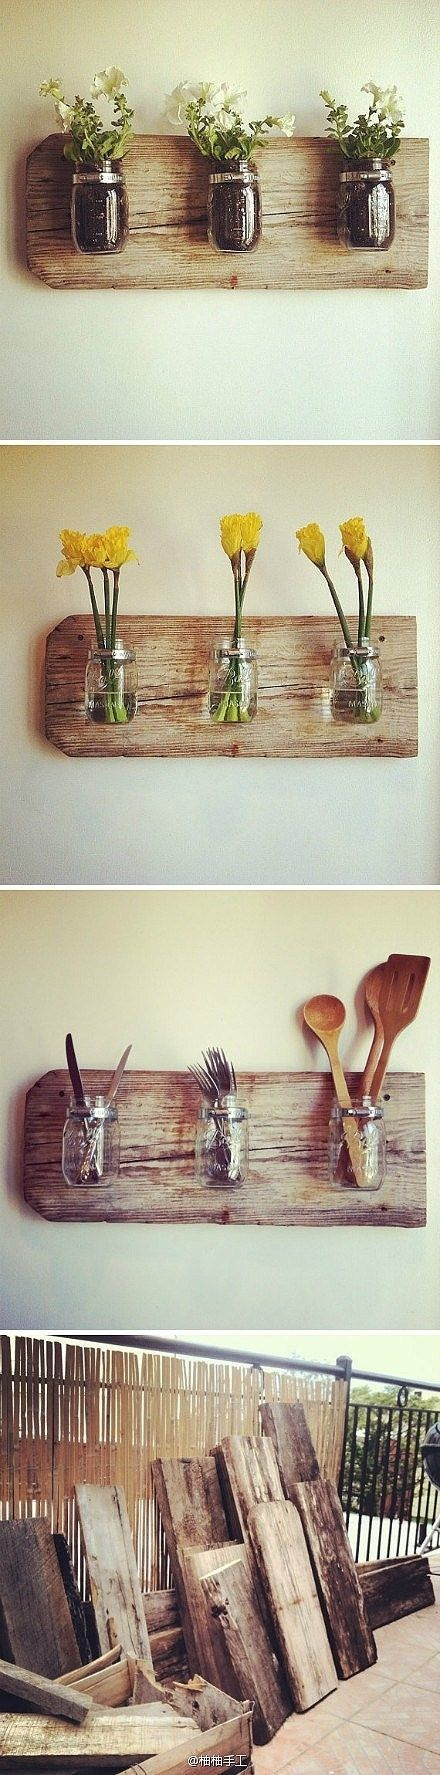 Salvage wood with mason jar vases/containers... Love this idea! Herb garden for